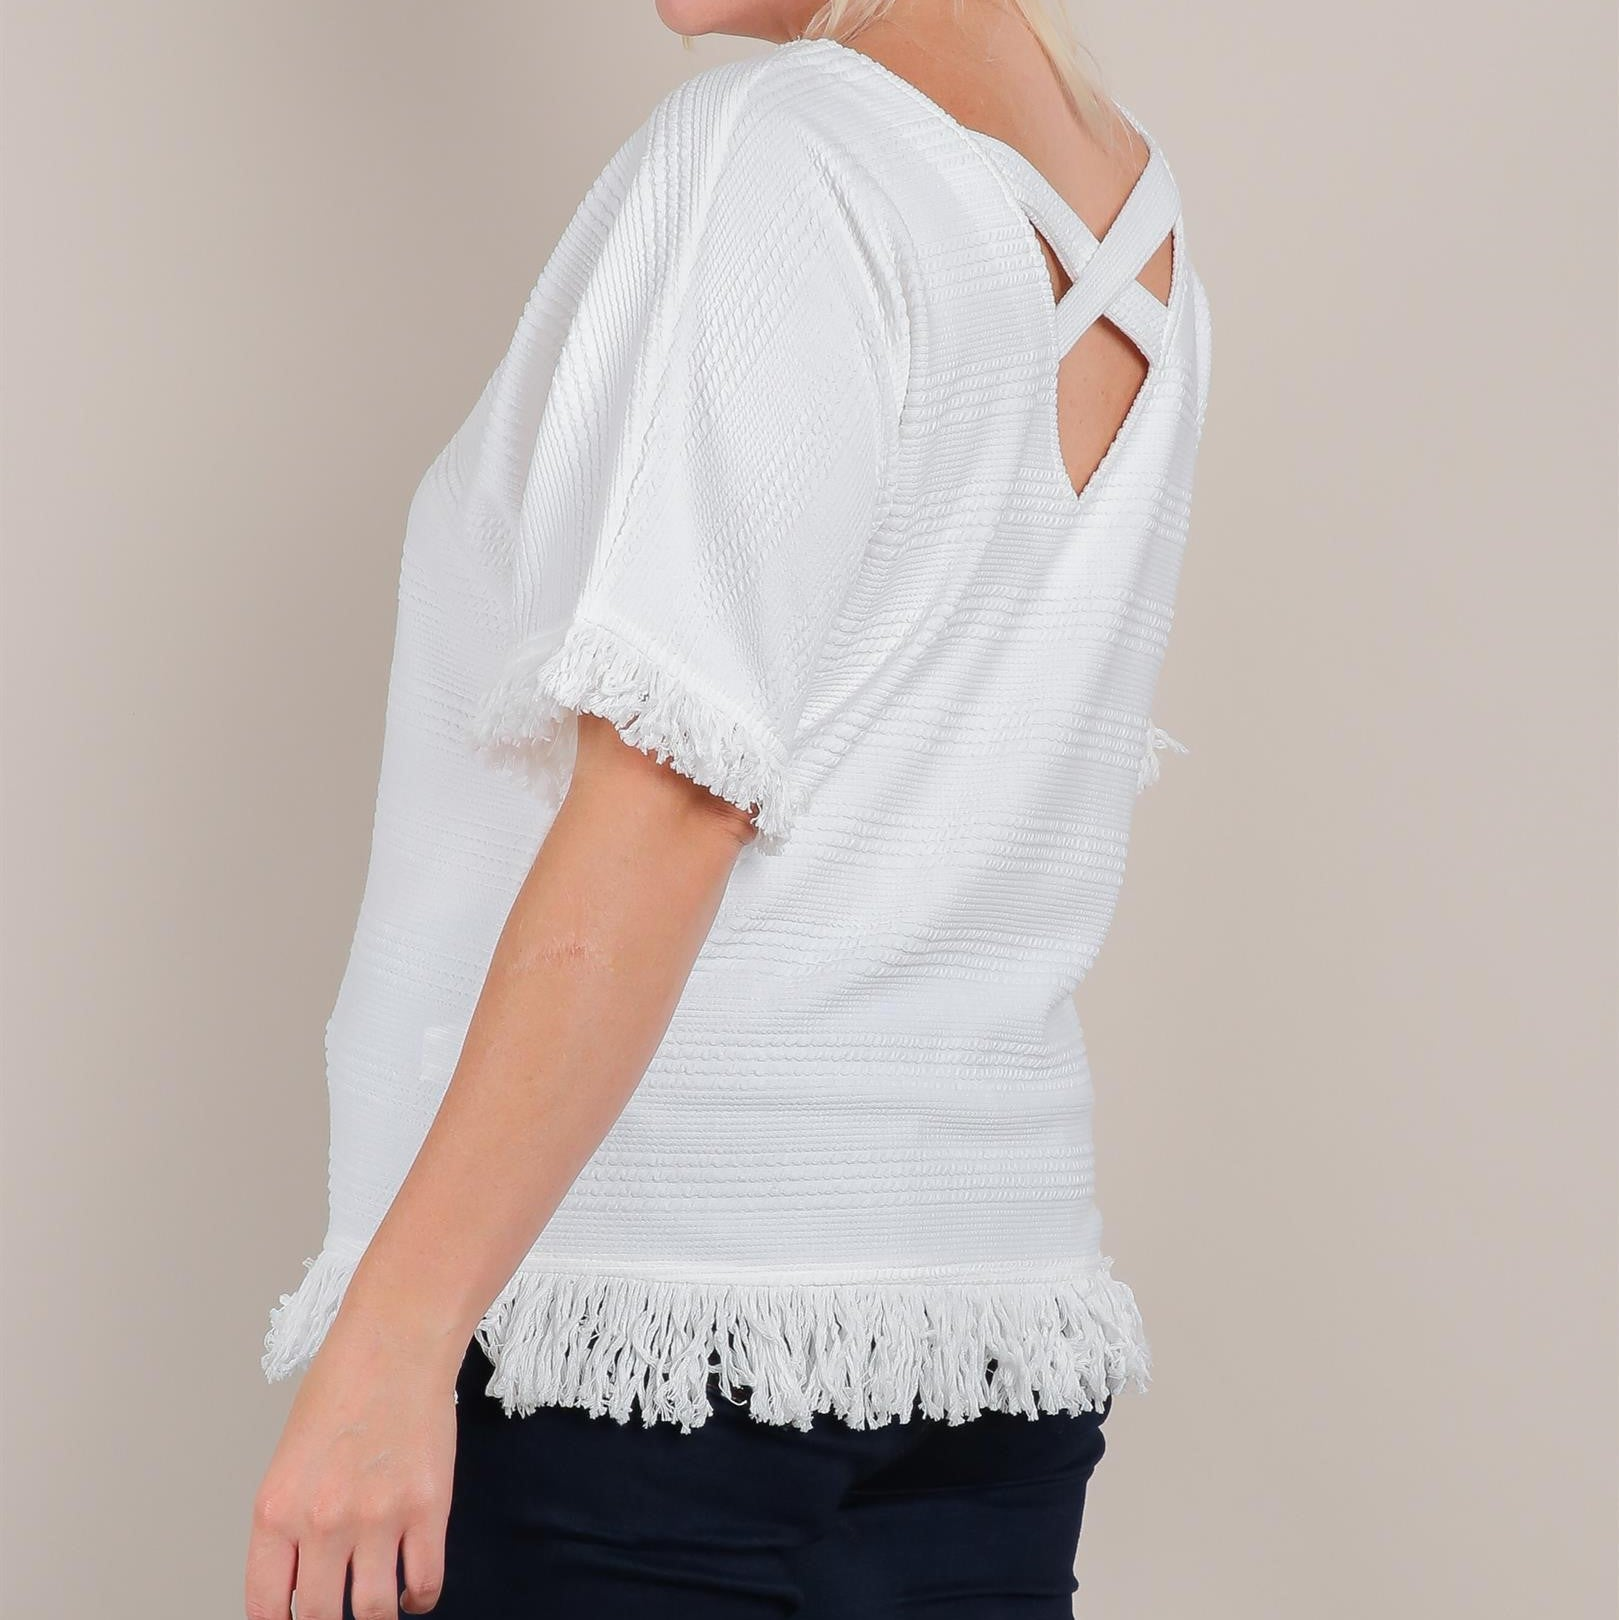 LACY'S TASSEL DETAIL OFF WHITE TOP